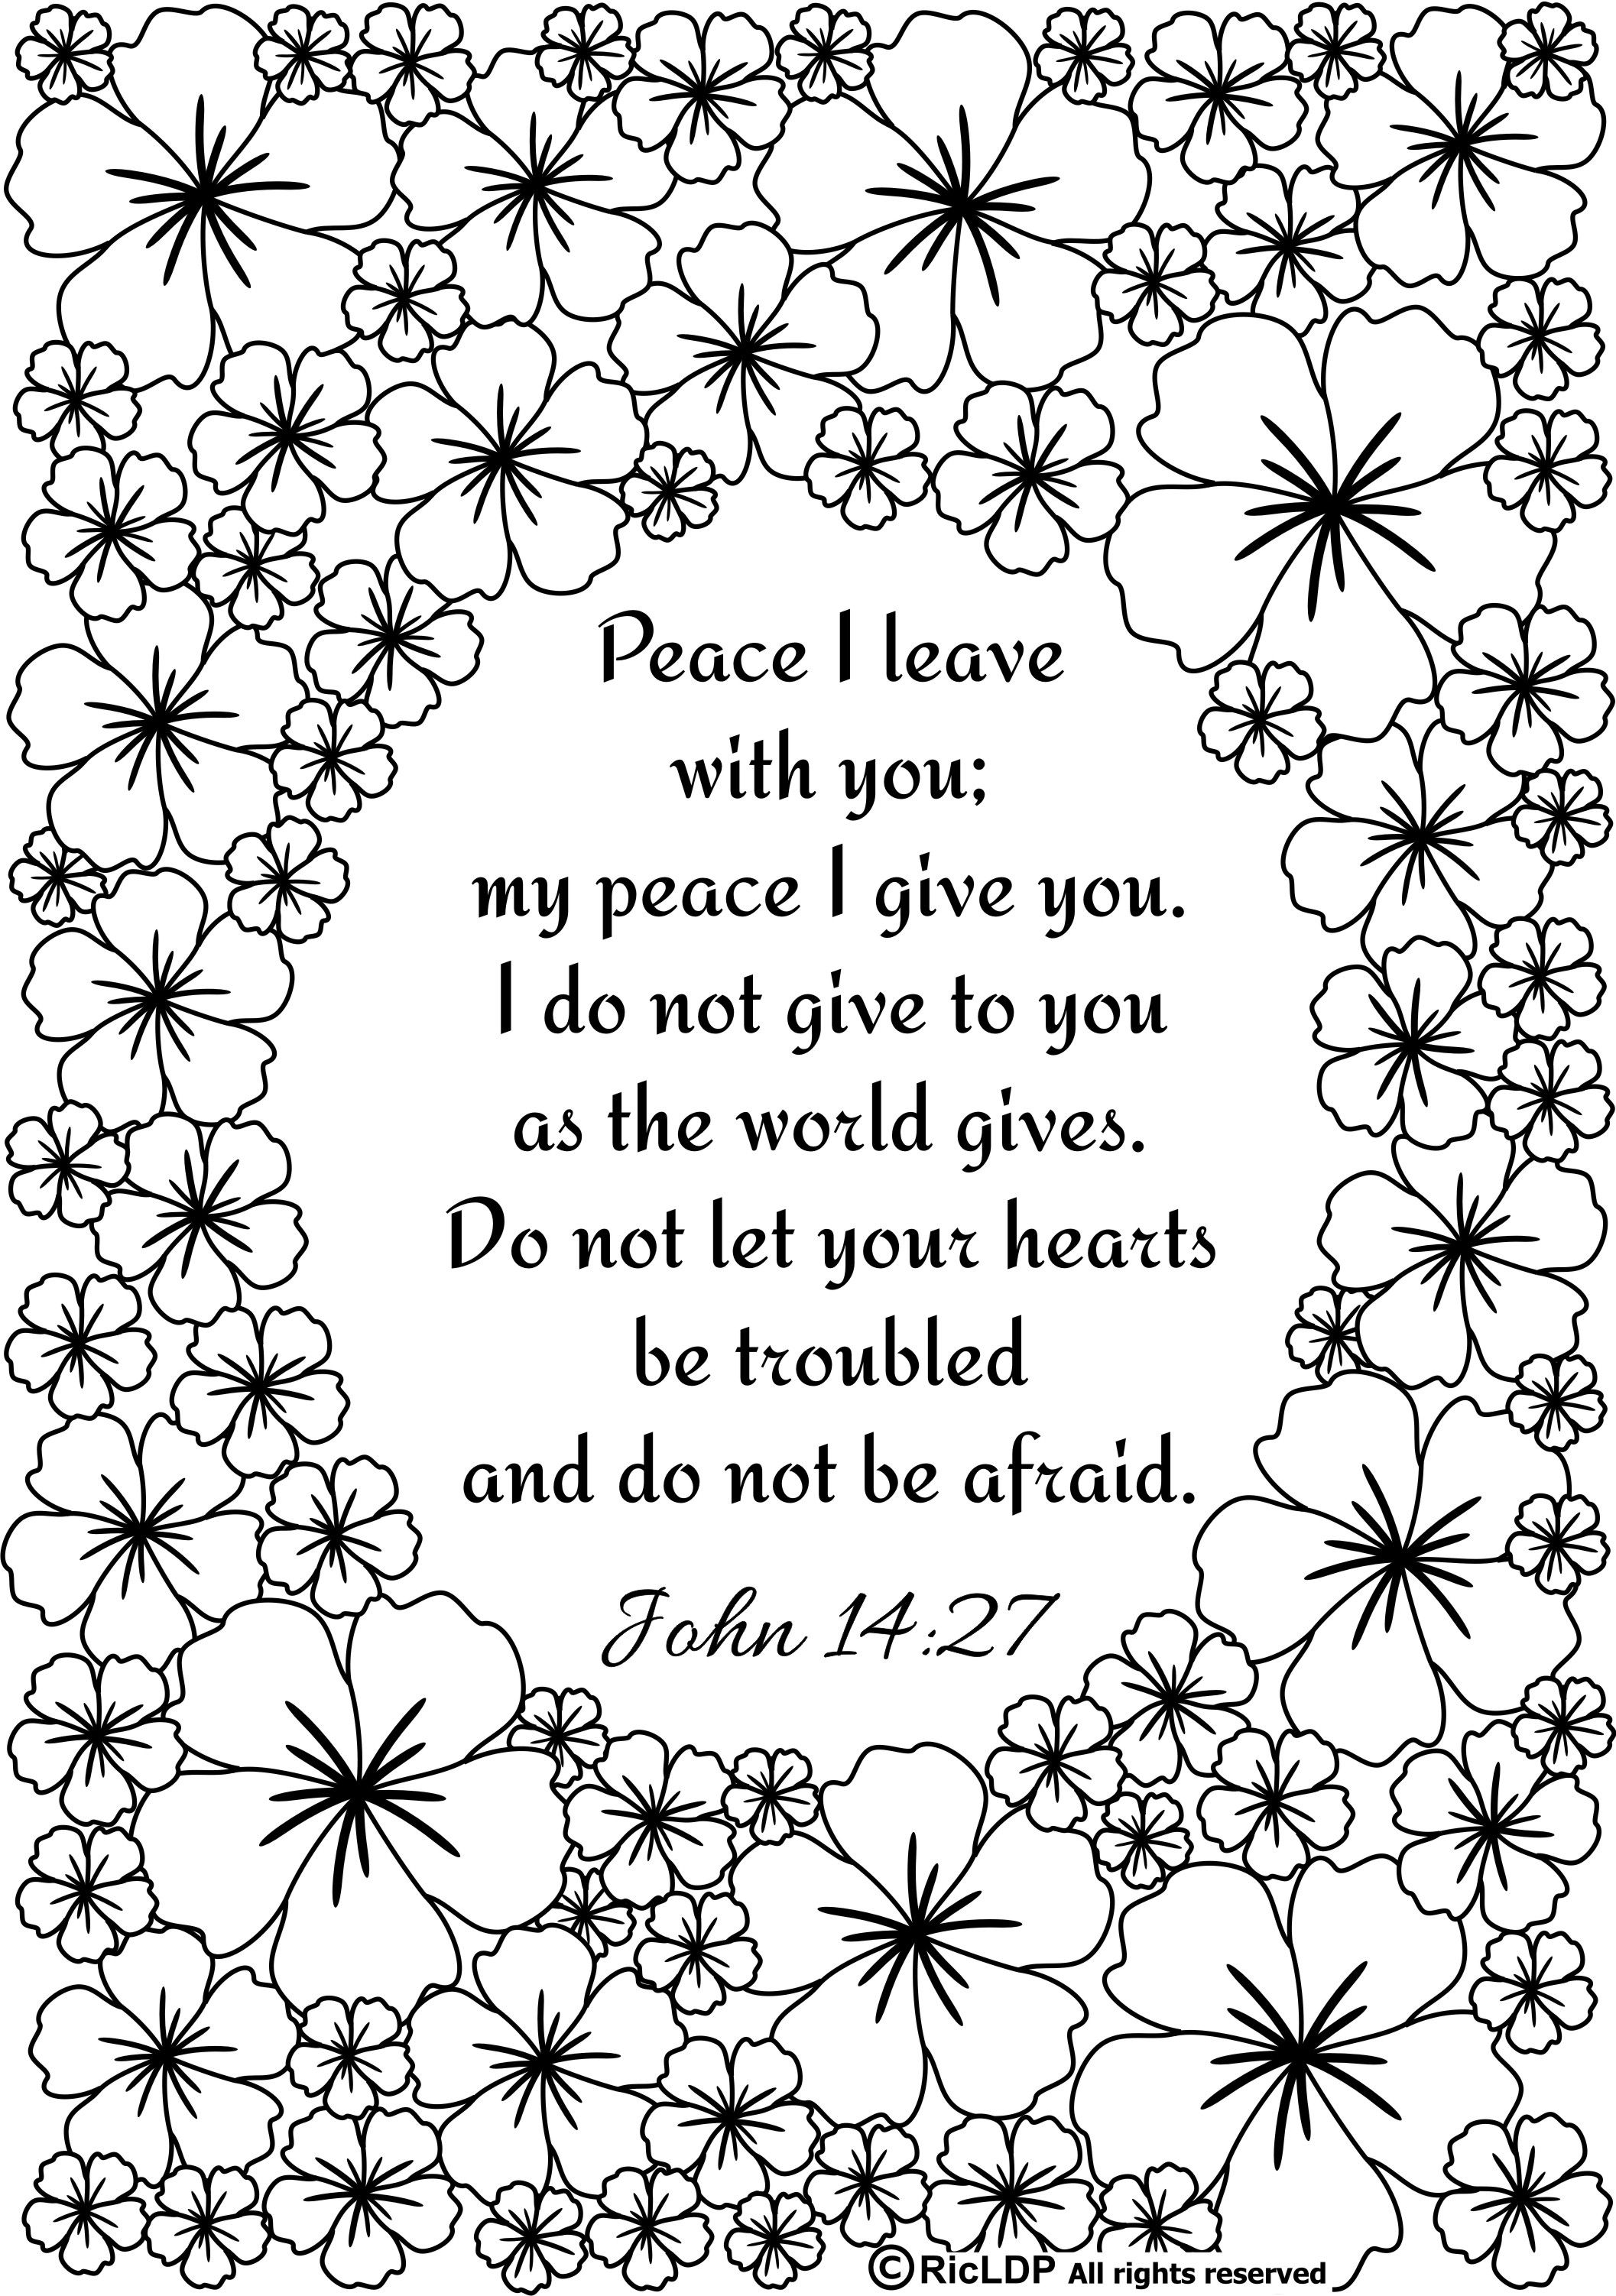 Ricldp Artworks (Ricldp) | Coloring Pages!!! | Pinterest | Bible - Free Printable Bible Coloring Pages With Verses